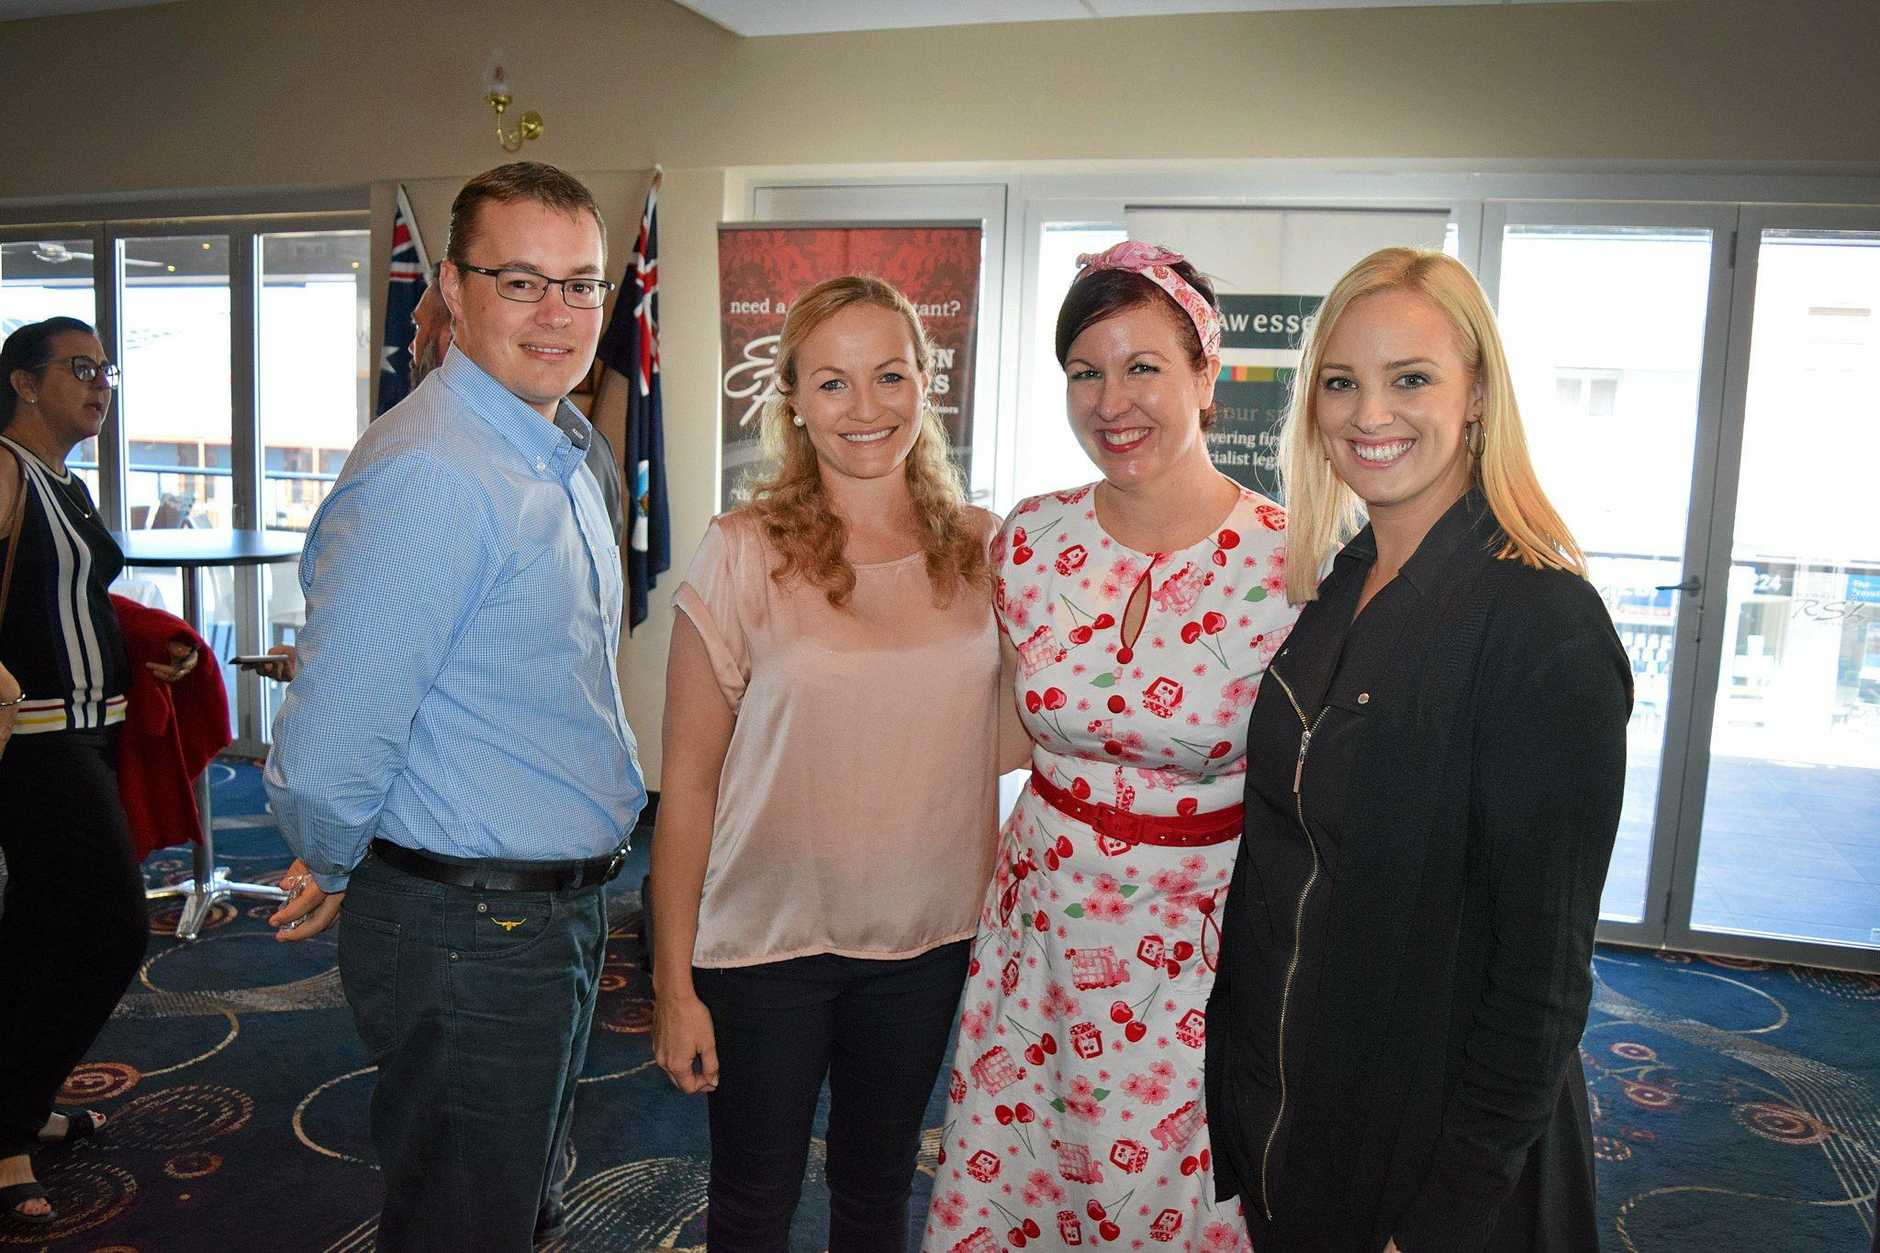 Ben Ellingsen, Sharlene Tapperet, Jody Allen and Rebekkah Rodriguez at the Commerce breakfast in Gympie.